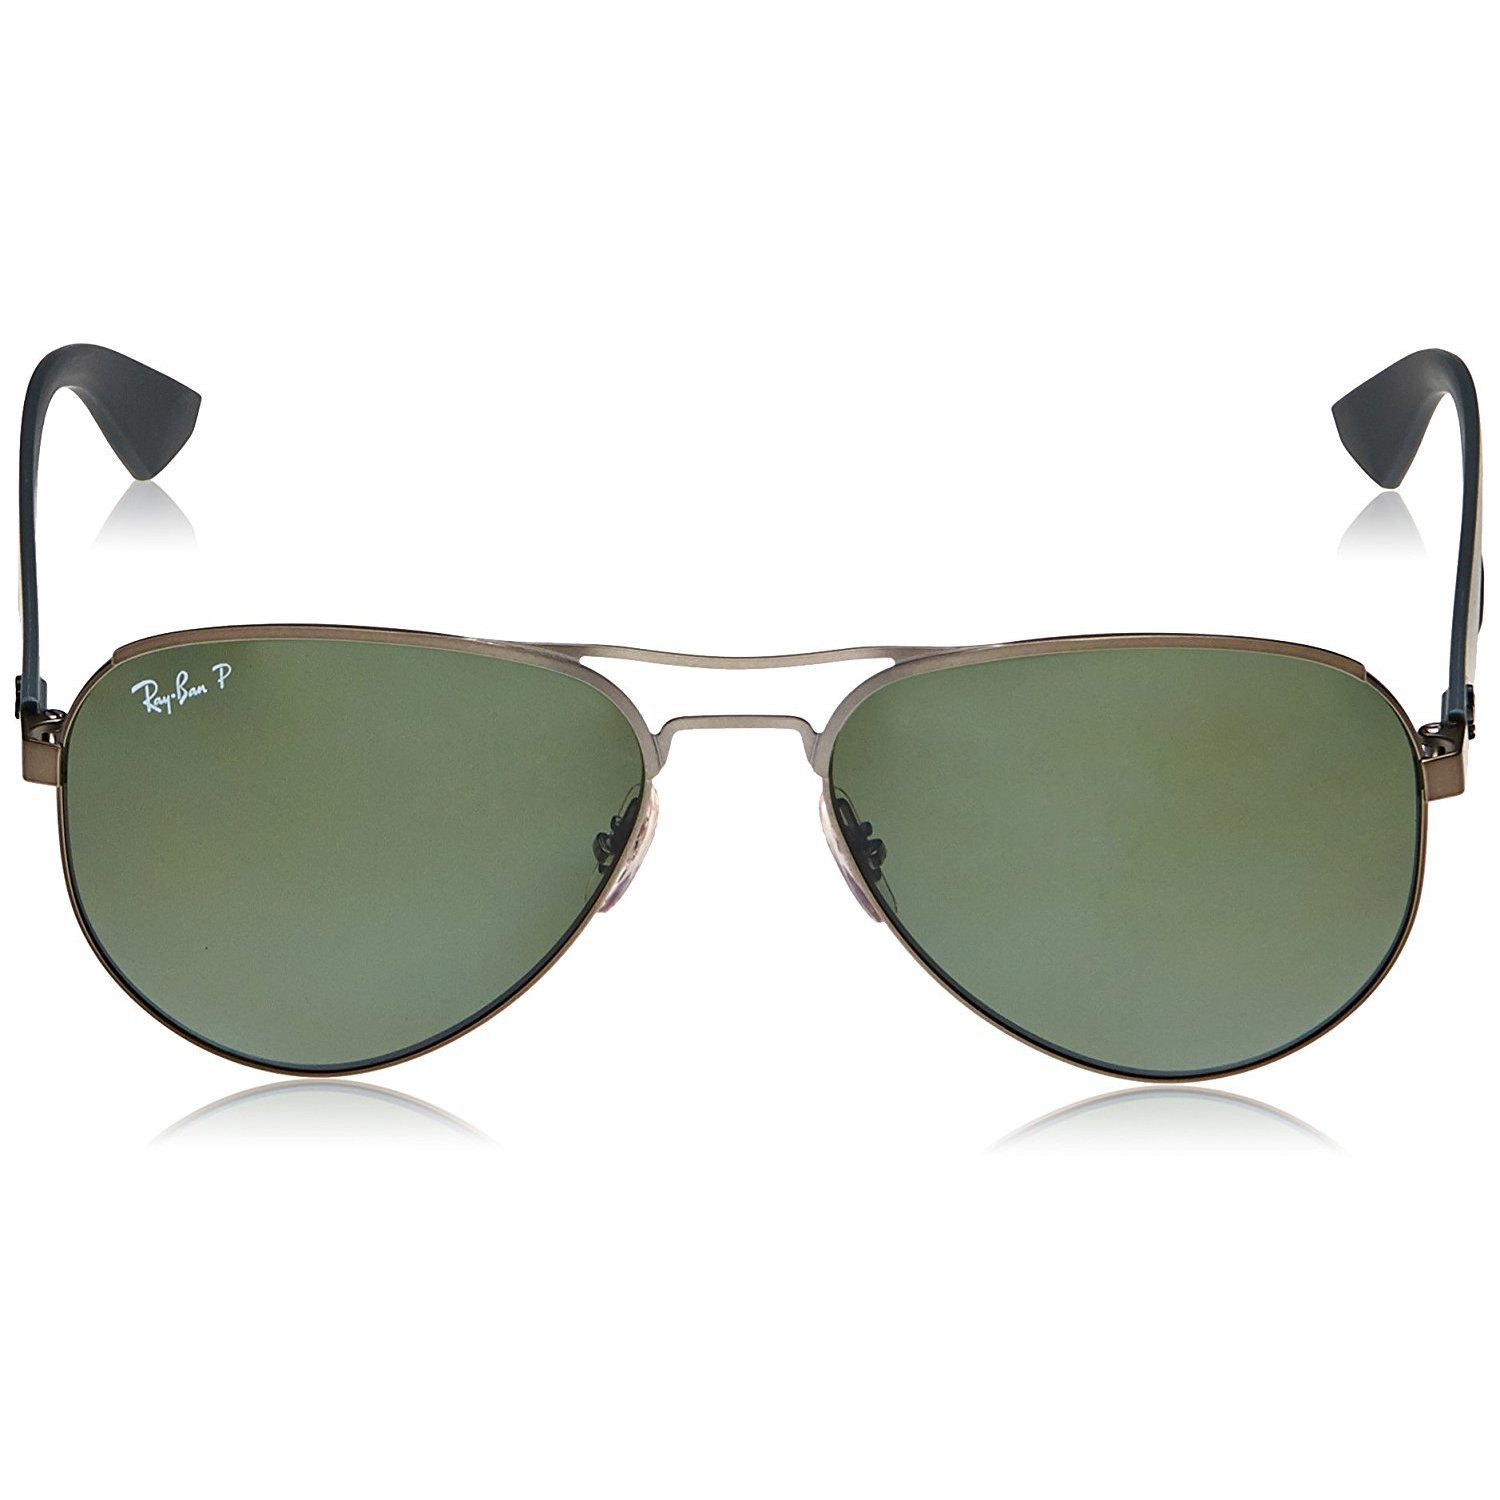 89bb396ce6 Shop Ray-Ban RB3523 029 9A Gunmetal Grey Frame Polarized Green 59mm Lens  Sunglasses - Free Shipping Today - Overstock - 14328598